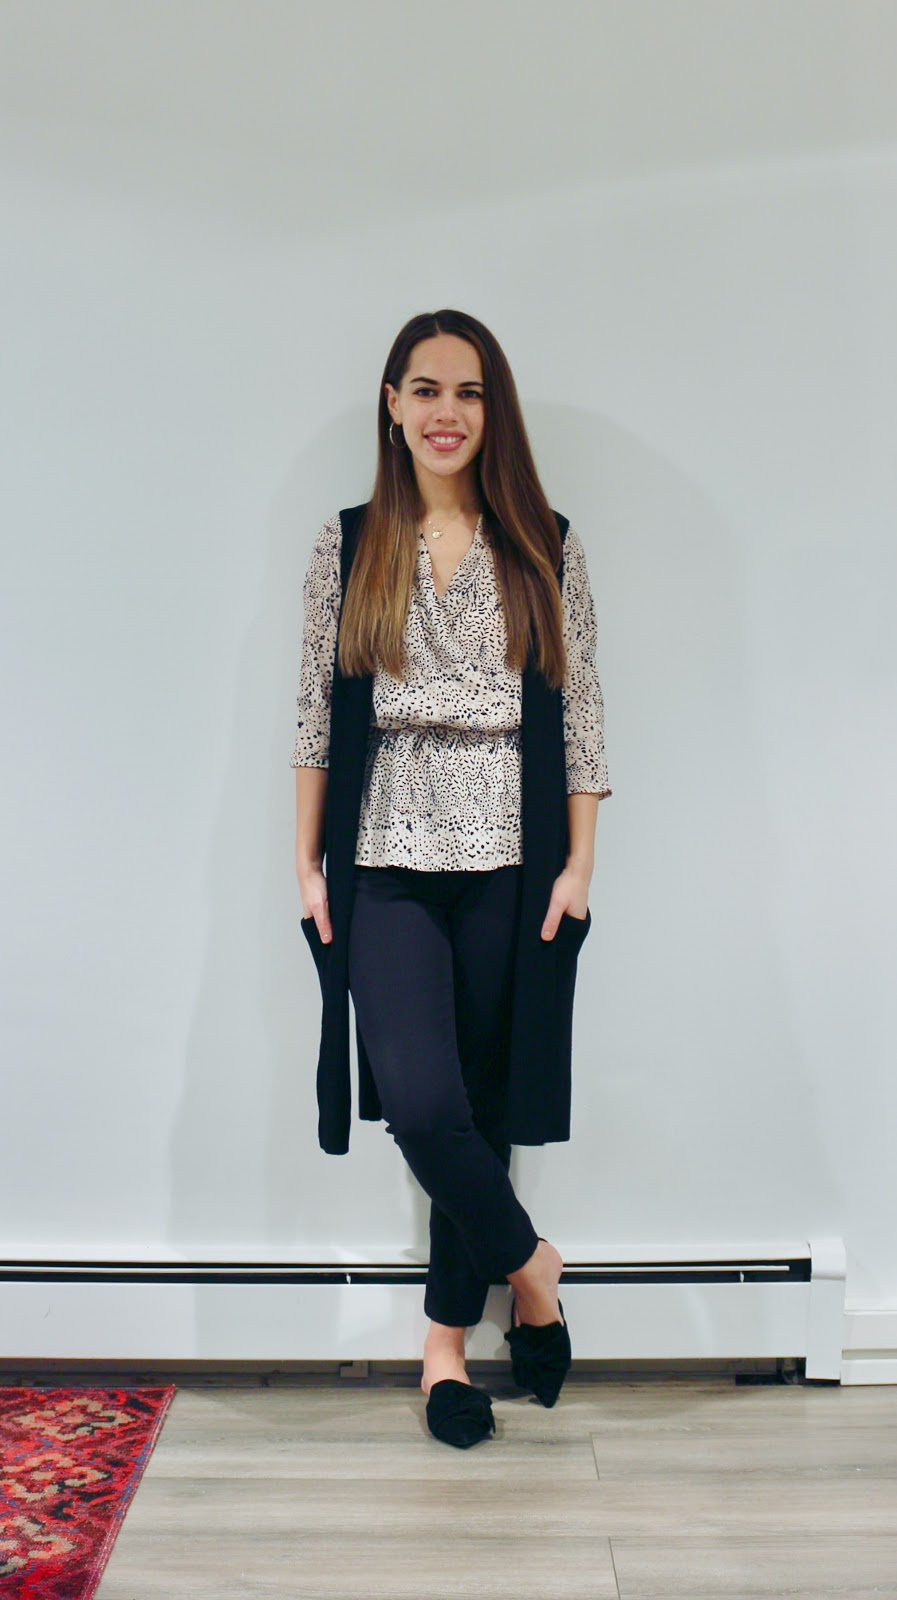 Jules in Flats - Patterned Peplum Blouse with Olivie Sweater Vest (Business Casual Winter Workwear on a Budget)